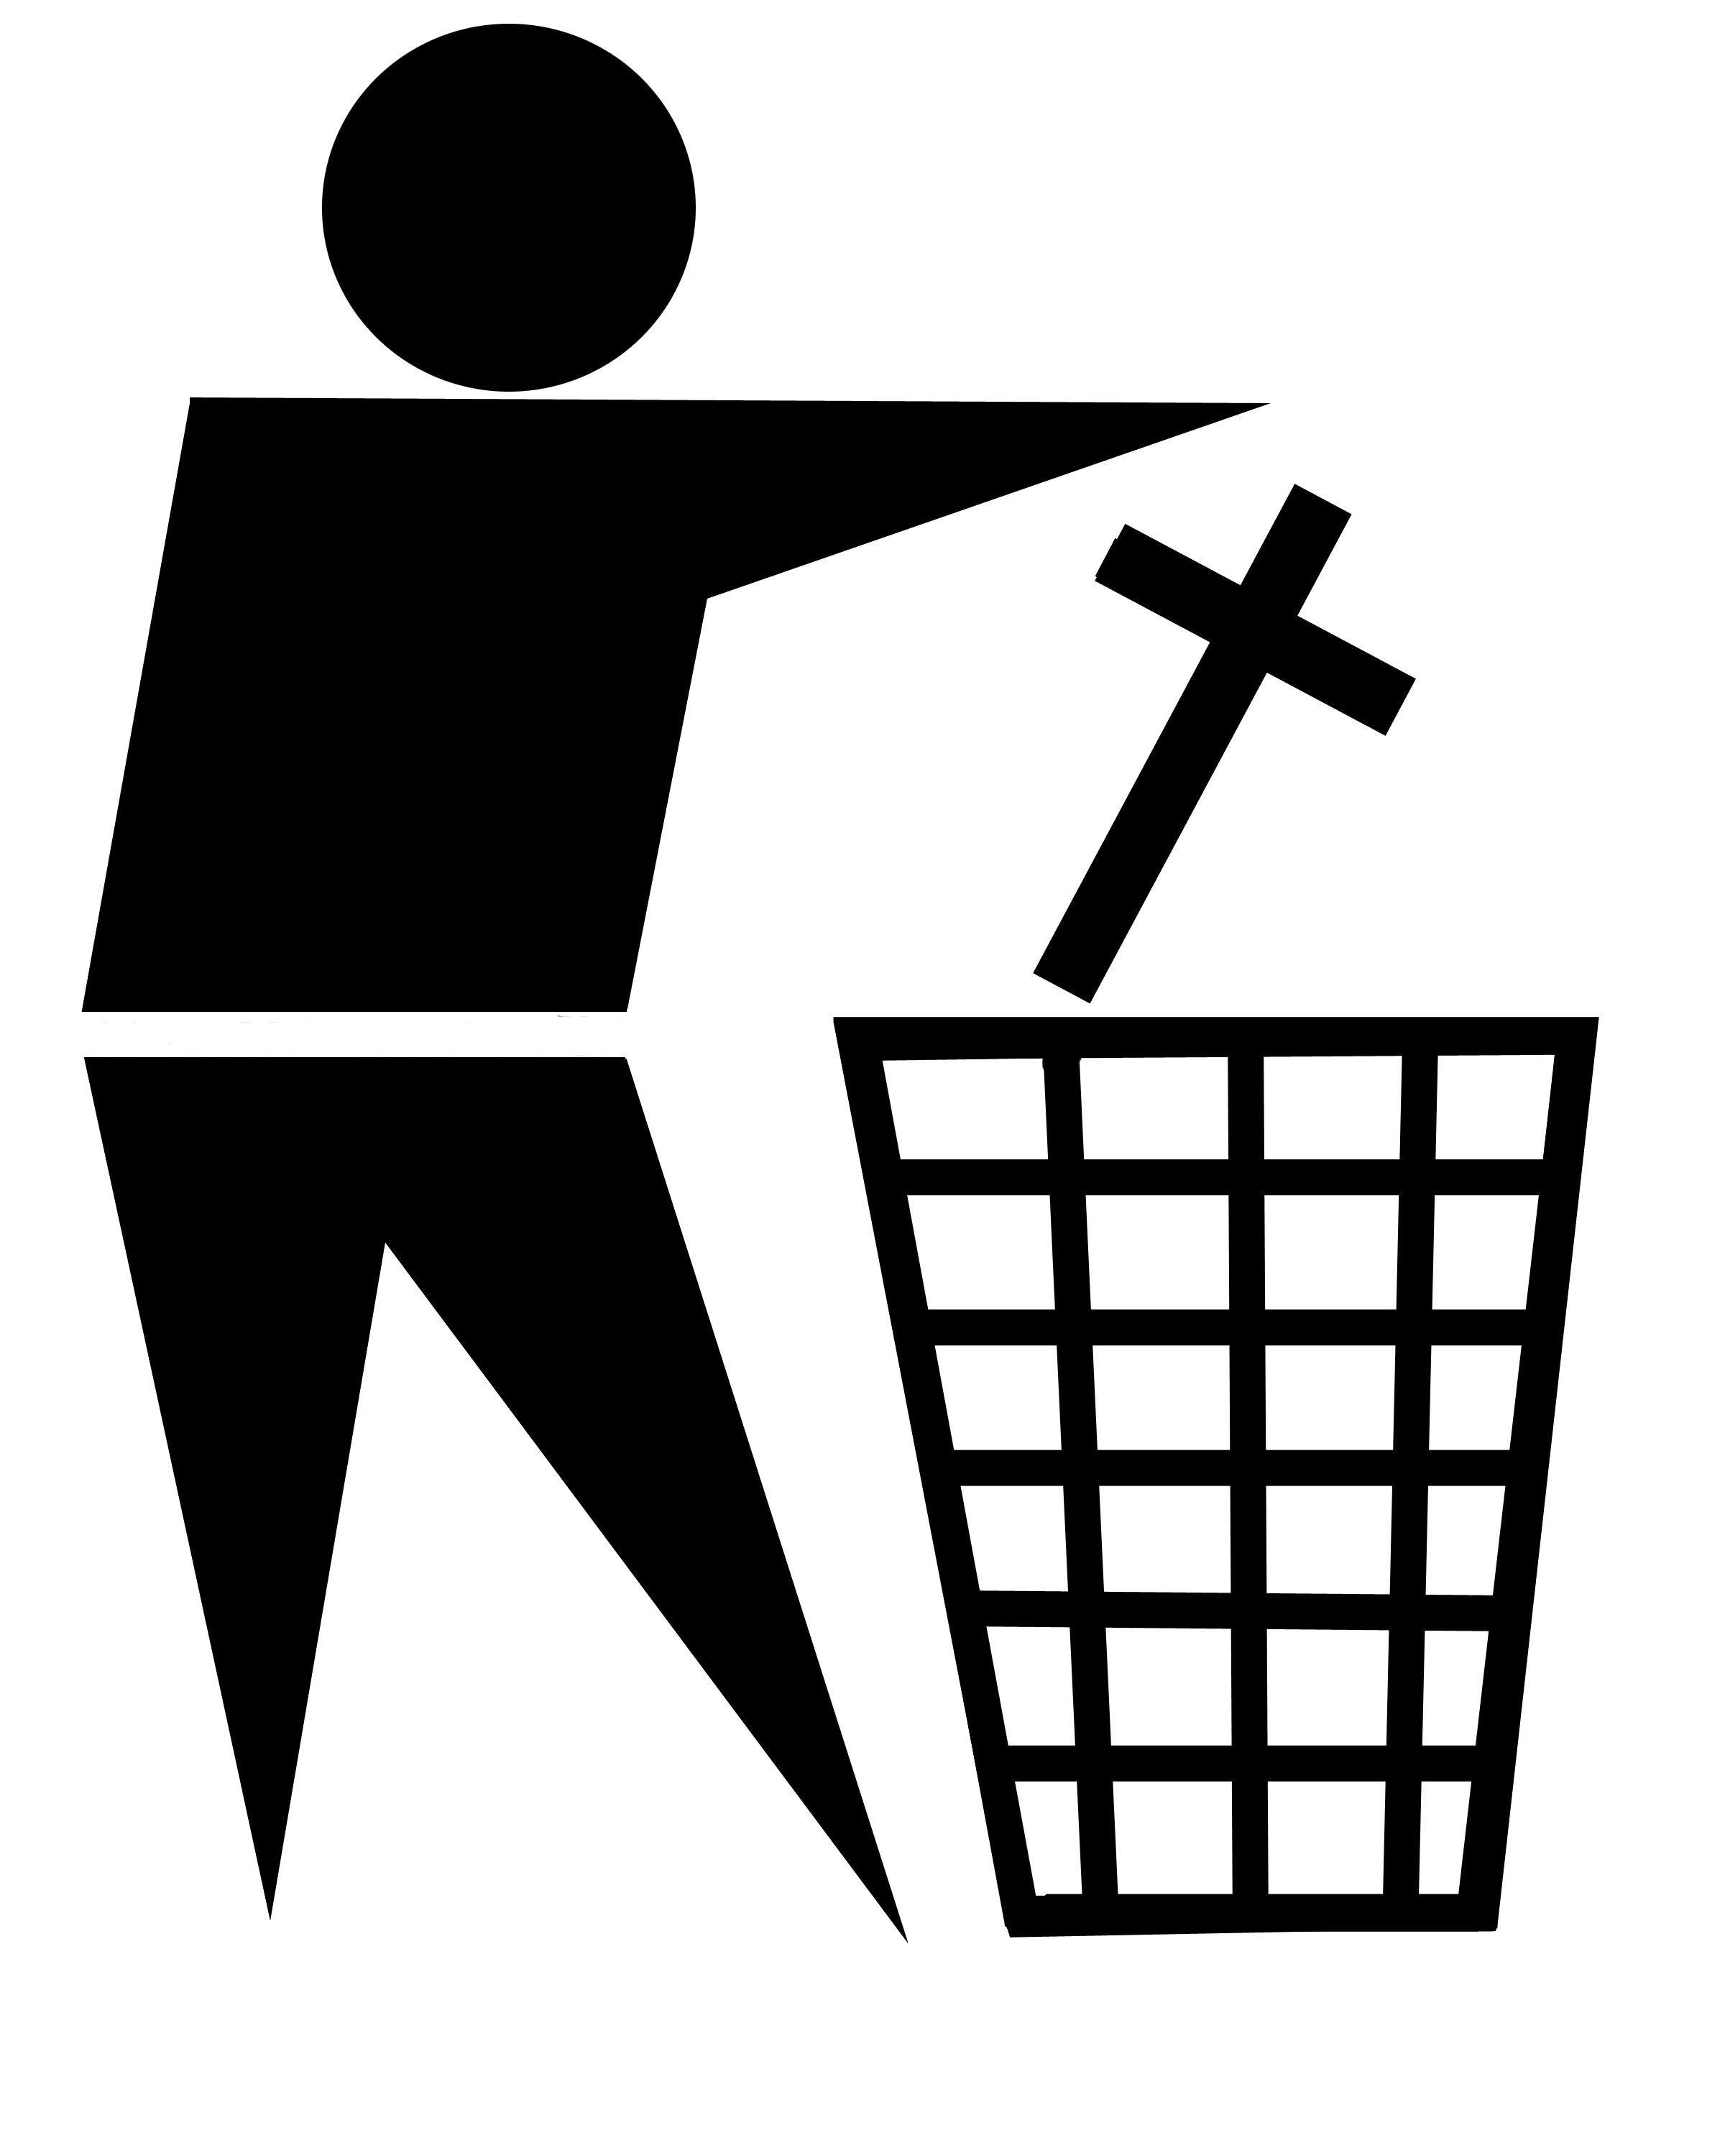 standard waste bin sign with religious cross being discarded